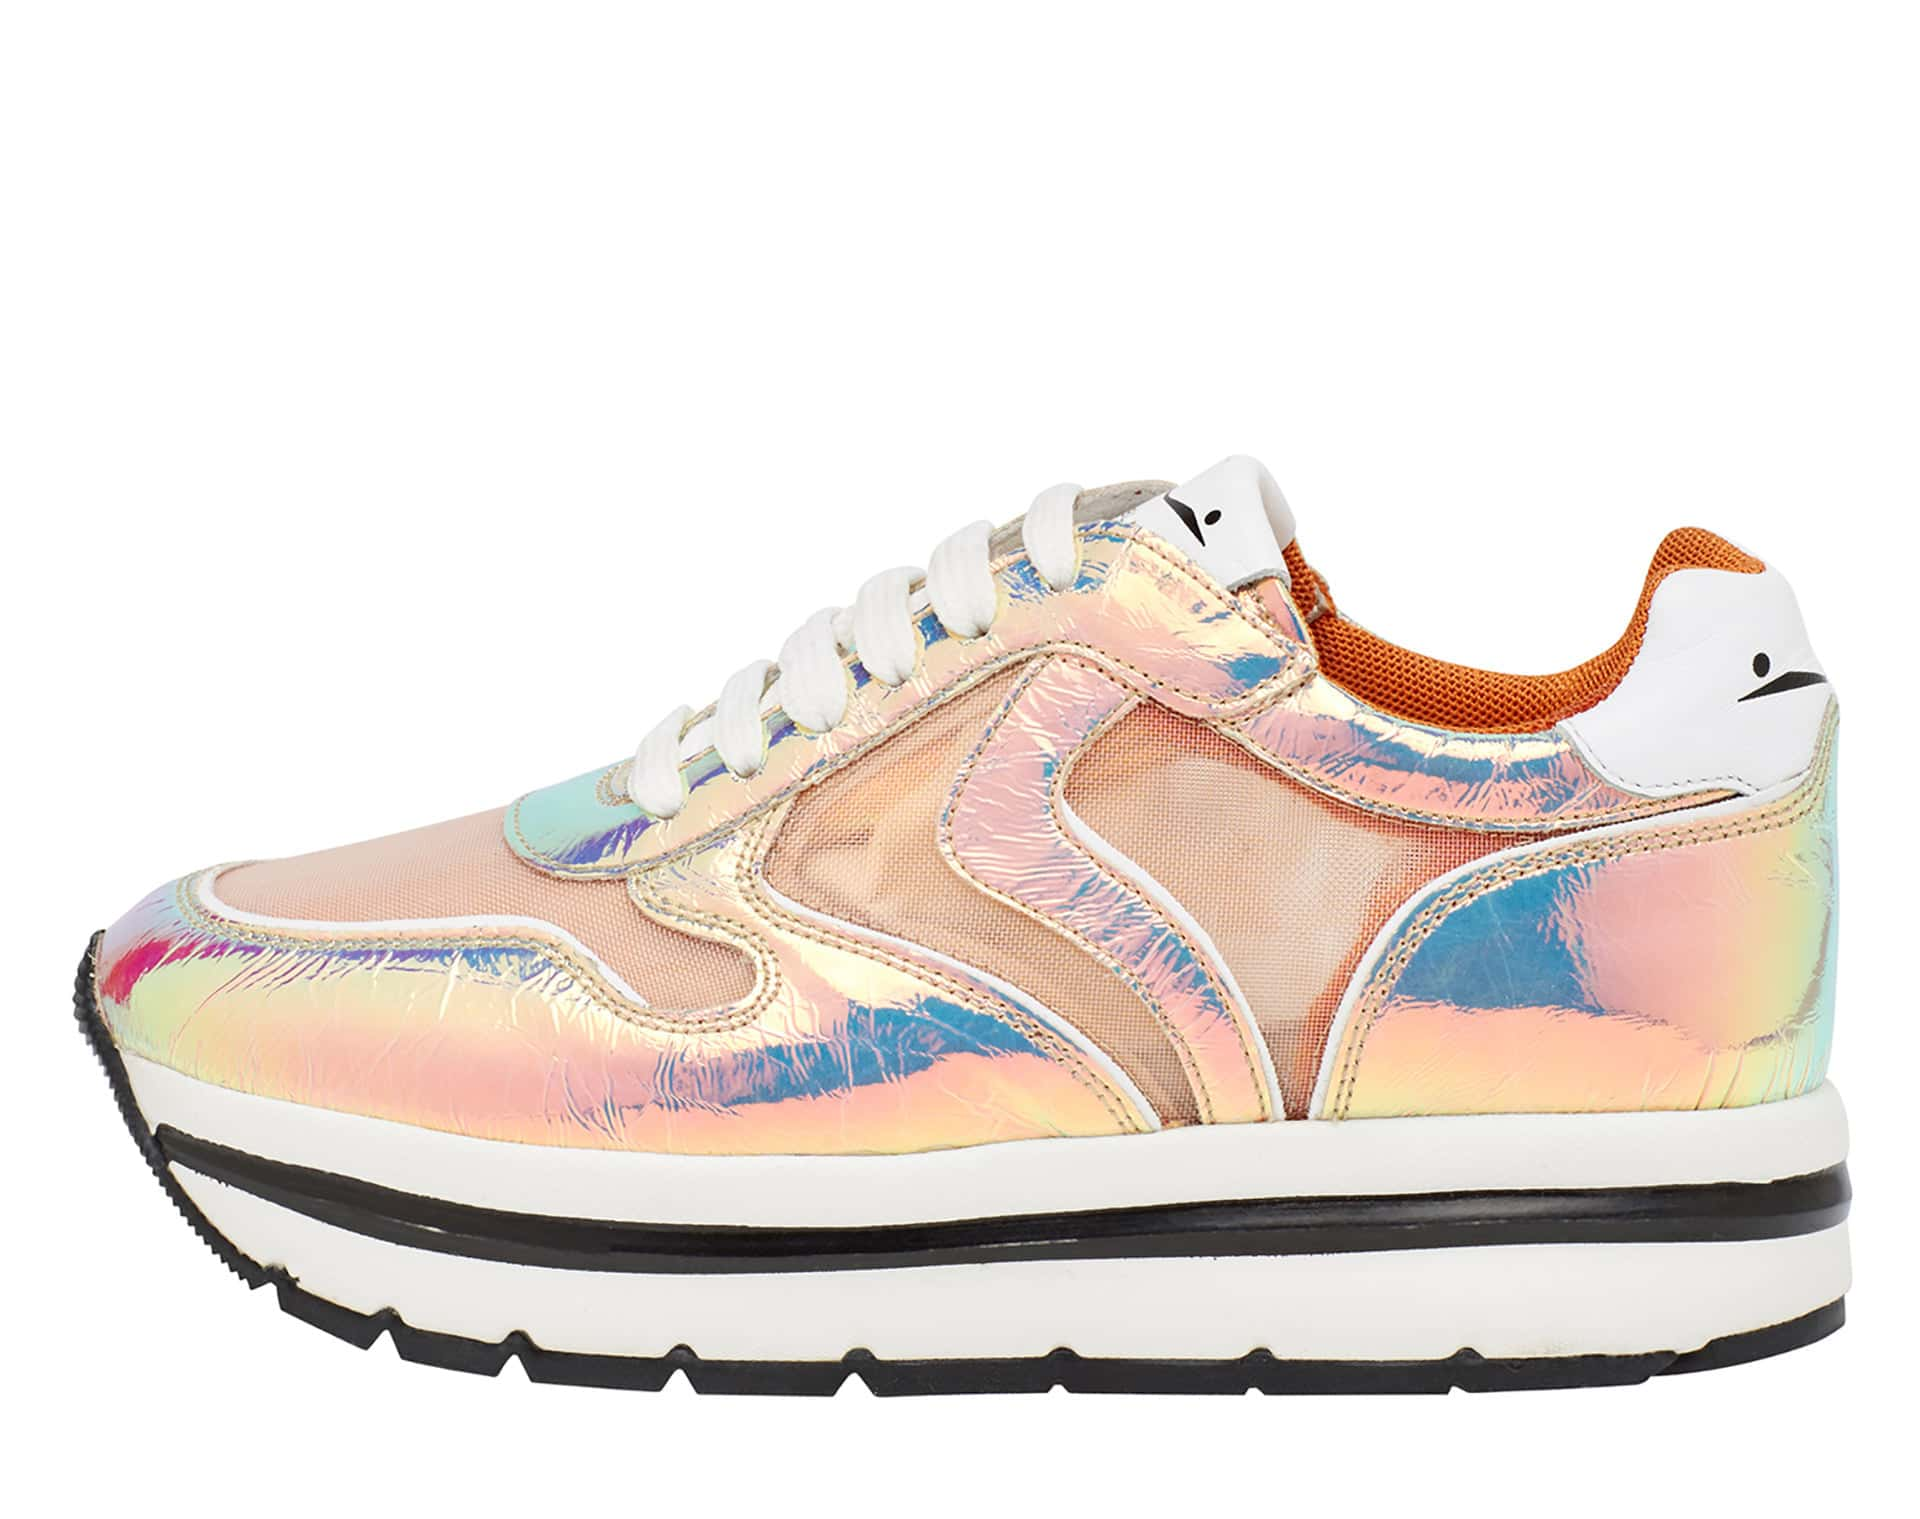 MAY MESH - Sneakers in pelle e rete - Rosa/Bianco/Arancio